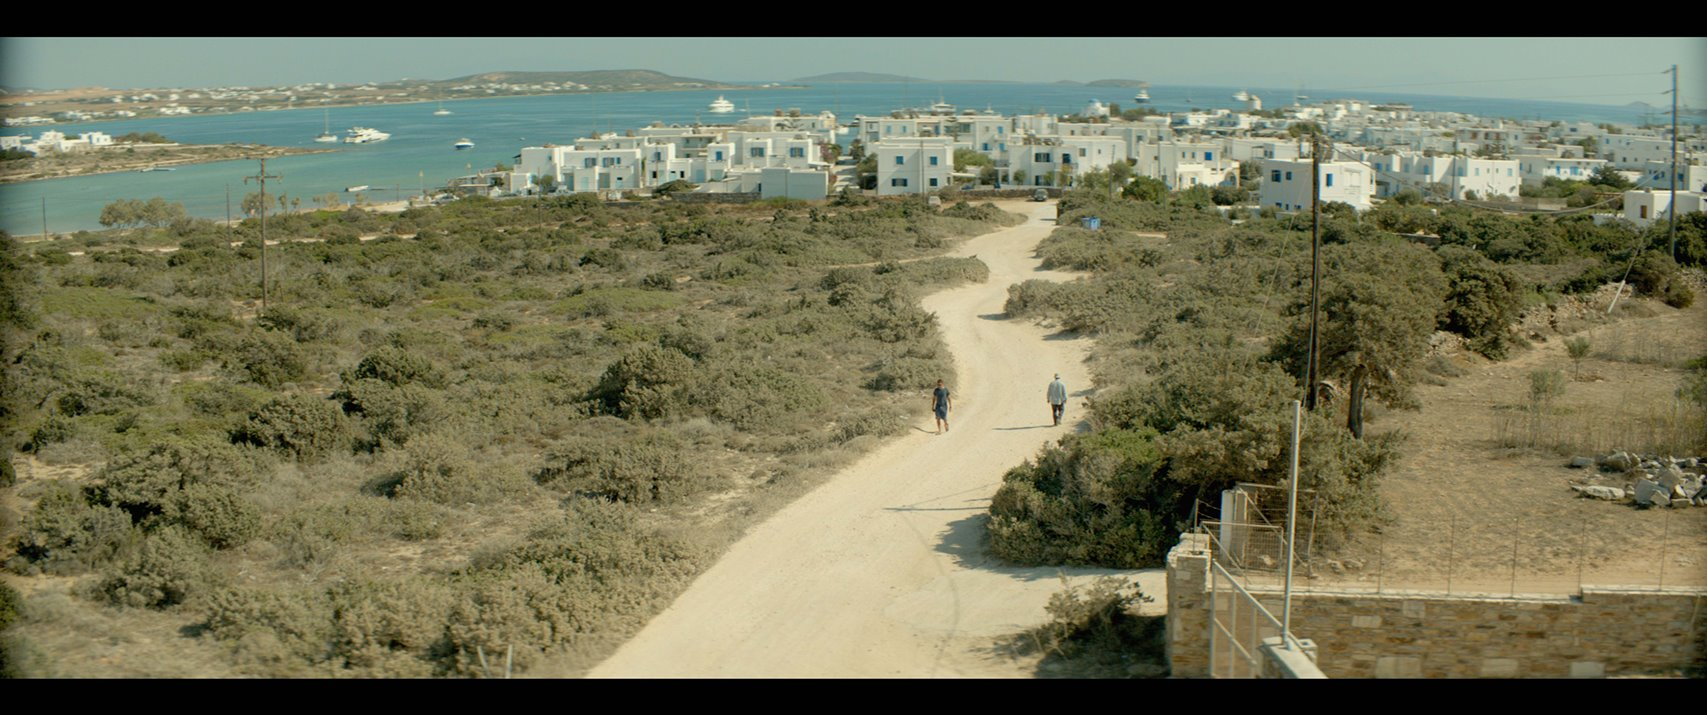 Suntan Antiparos4 Filming Europe   EUFCN launches the European Film Location Award